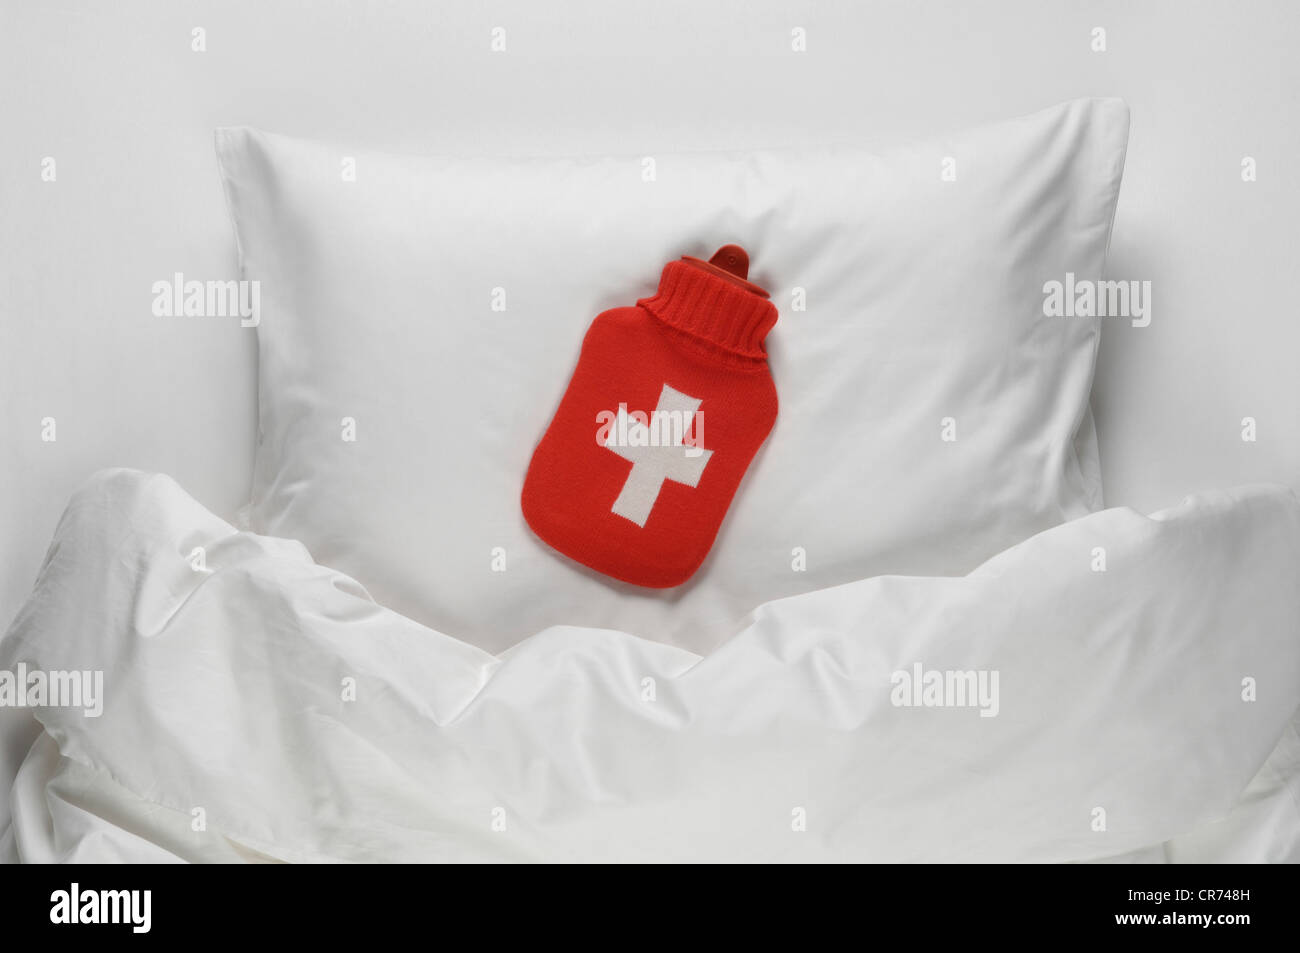 Hot water bottle on bed - Stock Image